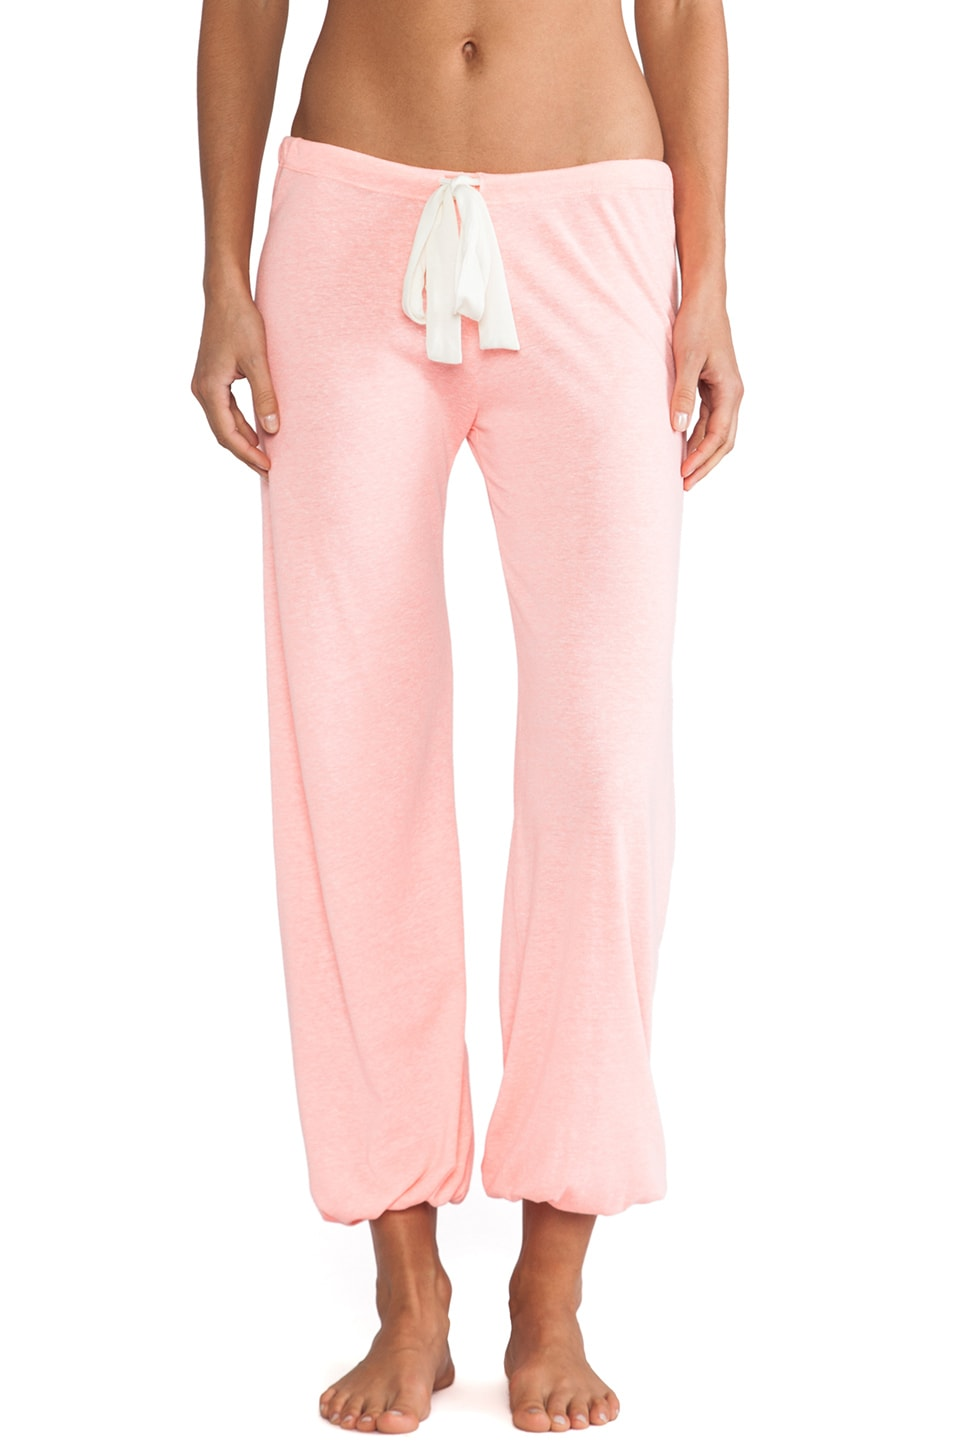 eberjey Heather Cropped Pant in Melon Glow